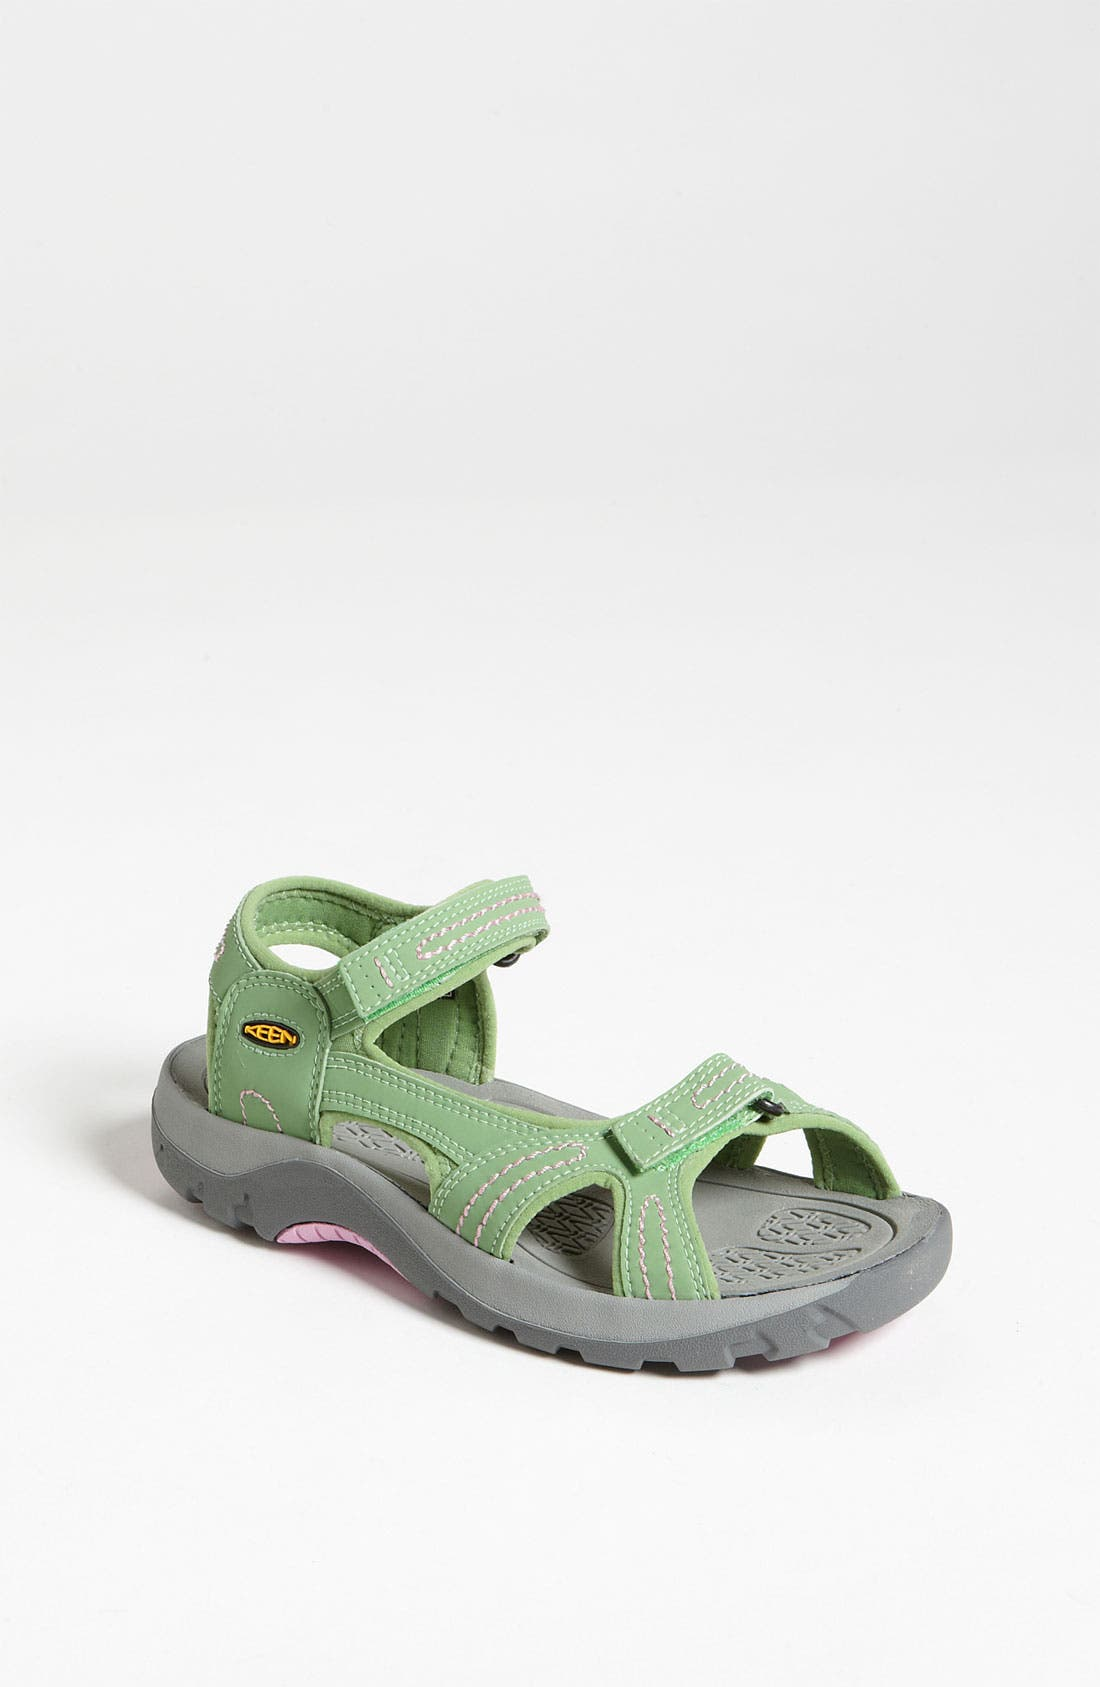 Alternate Image 1 Selected - Keen 'Jura' Sandal (Toddler, Little Kid & Big Kid)